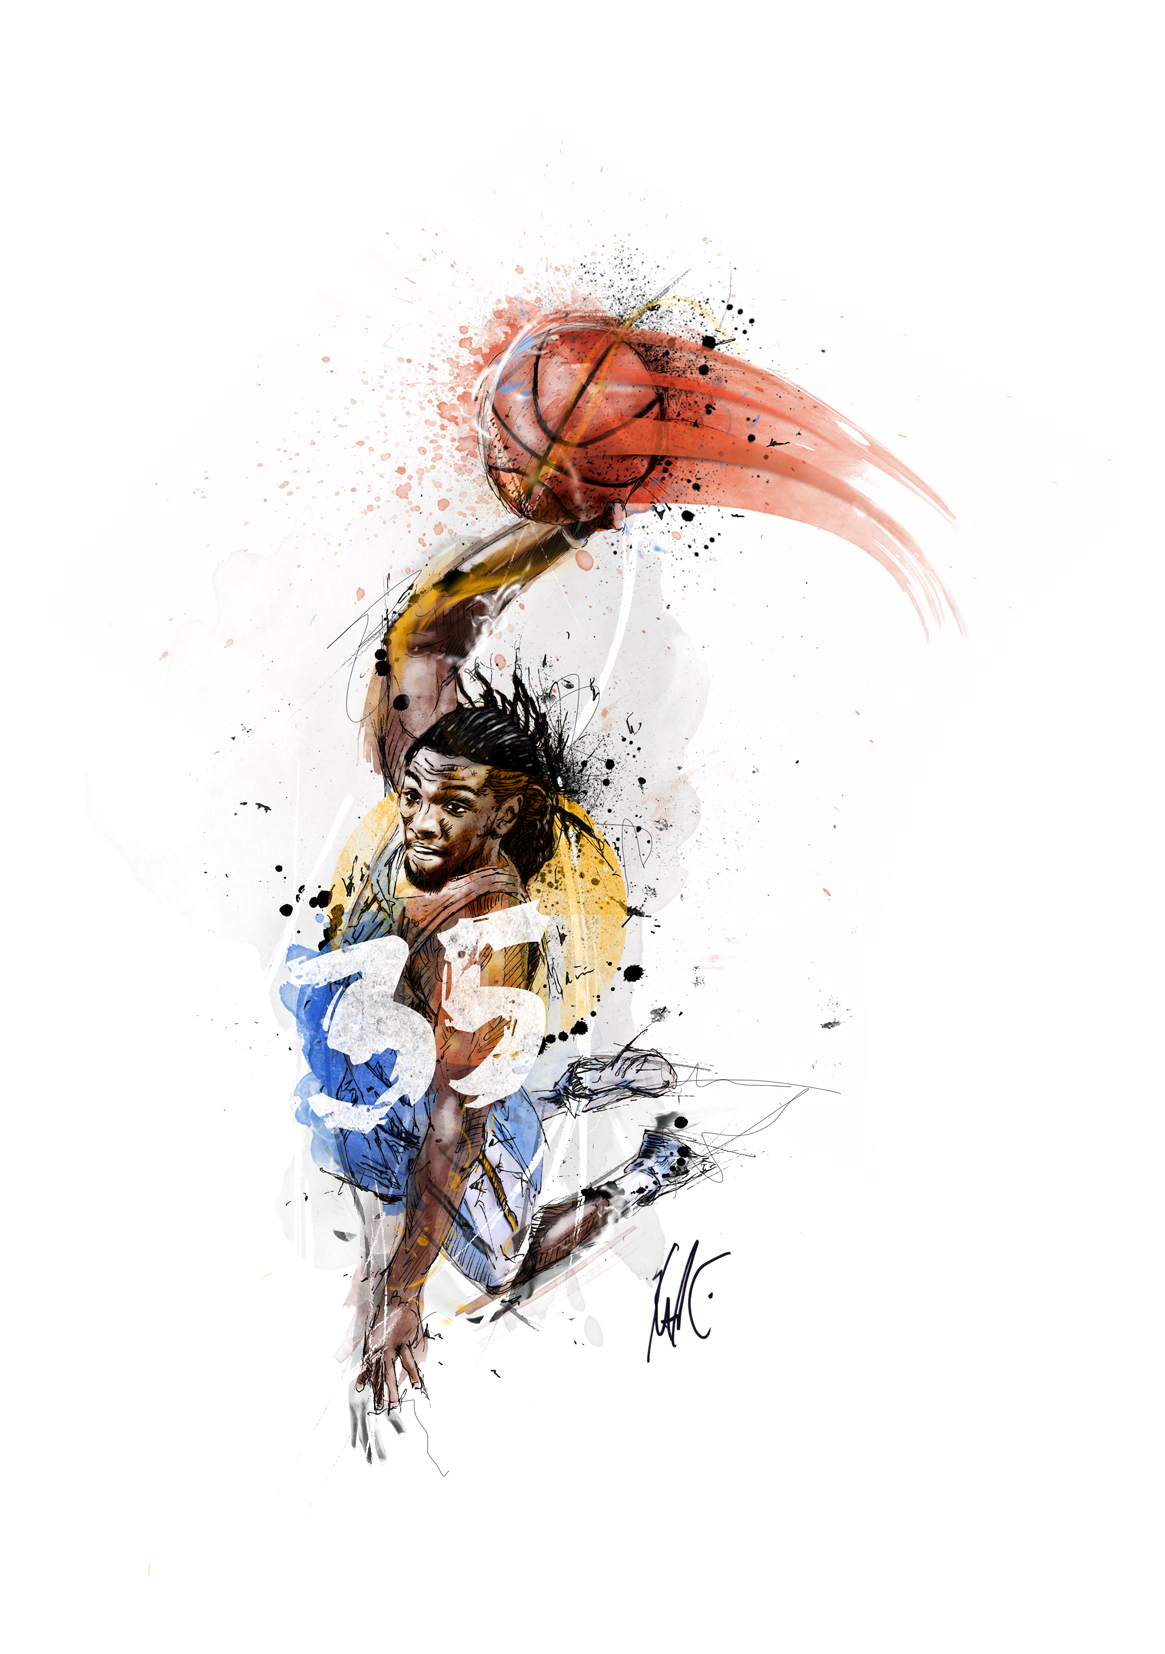 sdi2-kenneth-faried-by-chris-slabber.jpg